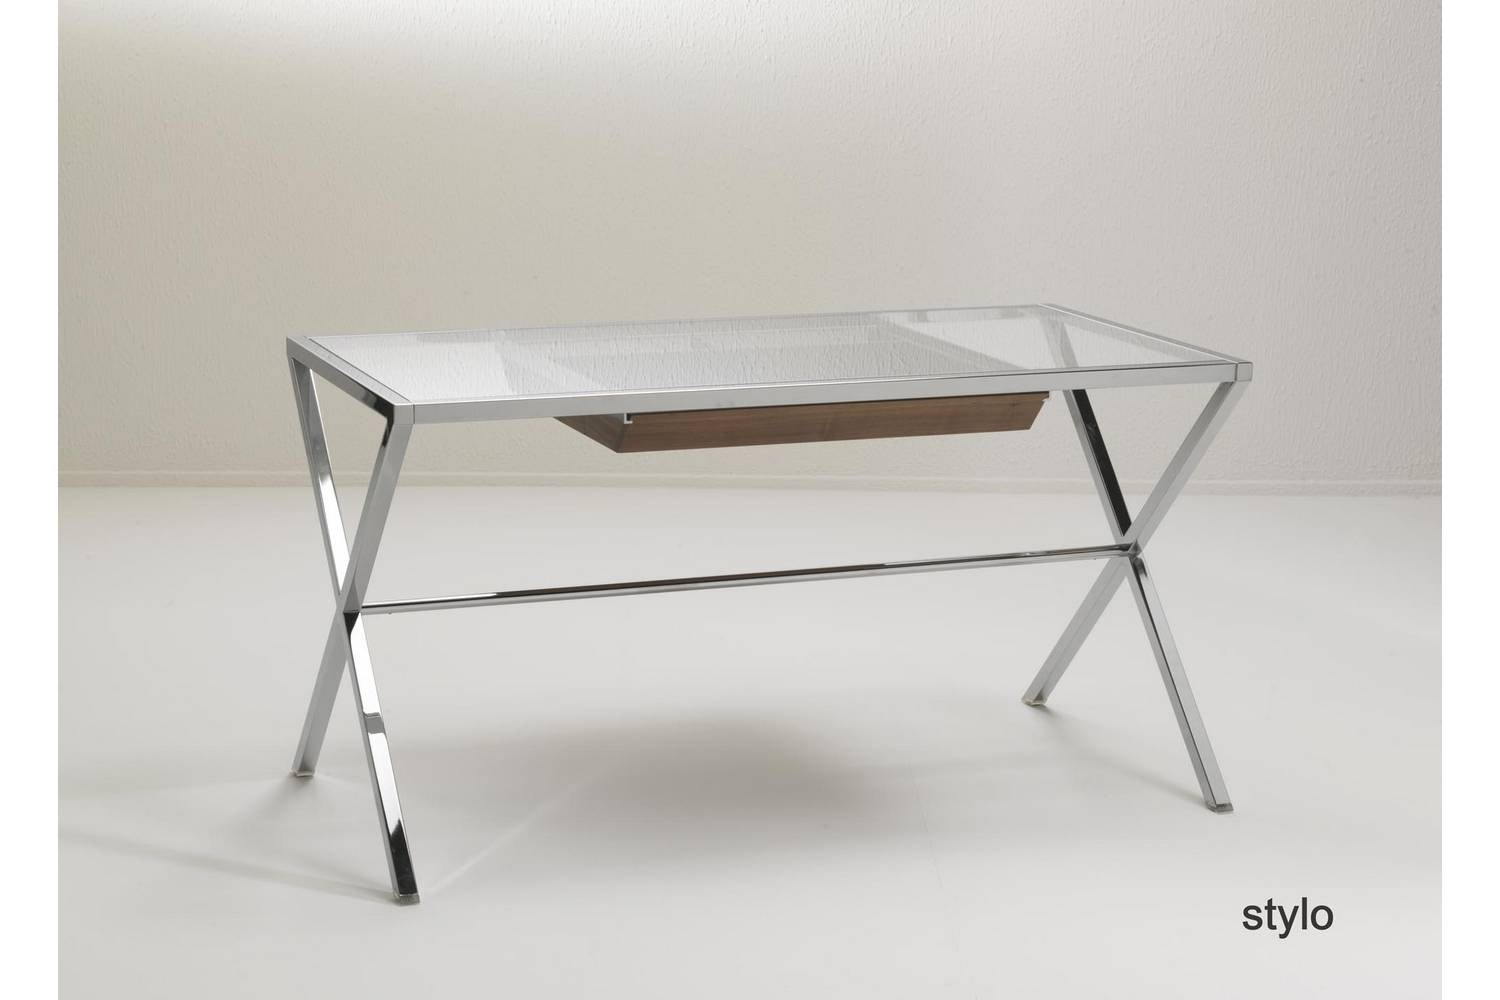 Stylo Writing Desk by T. Colzani for Porada